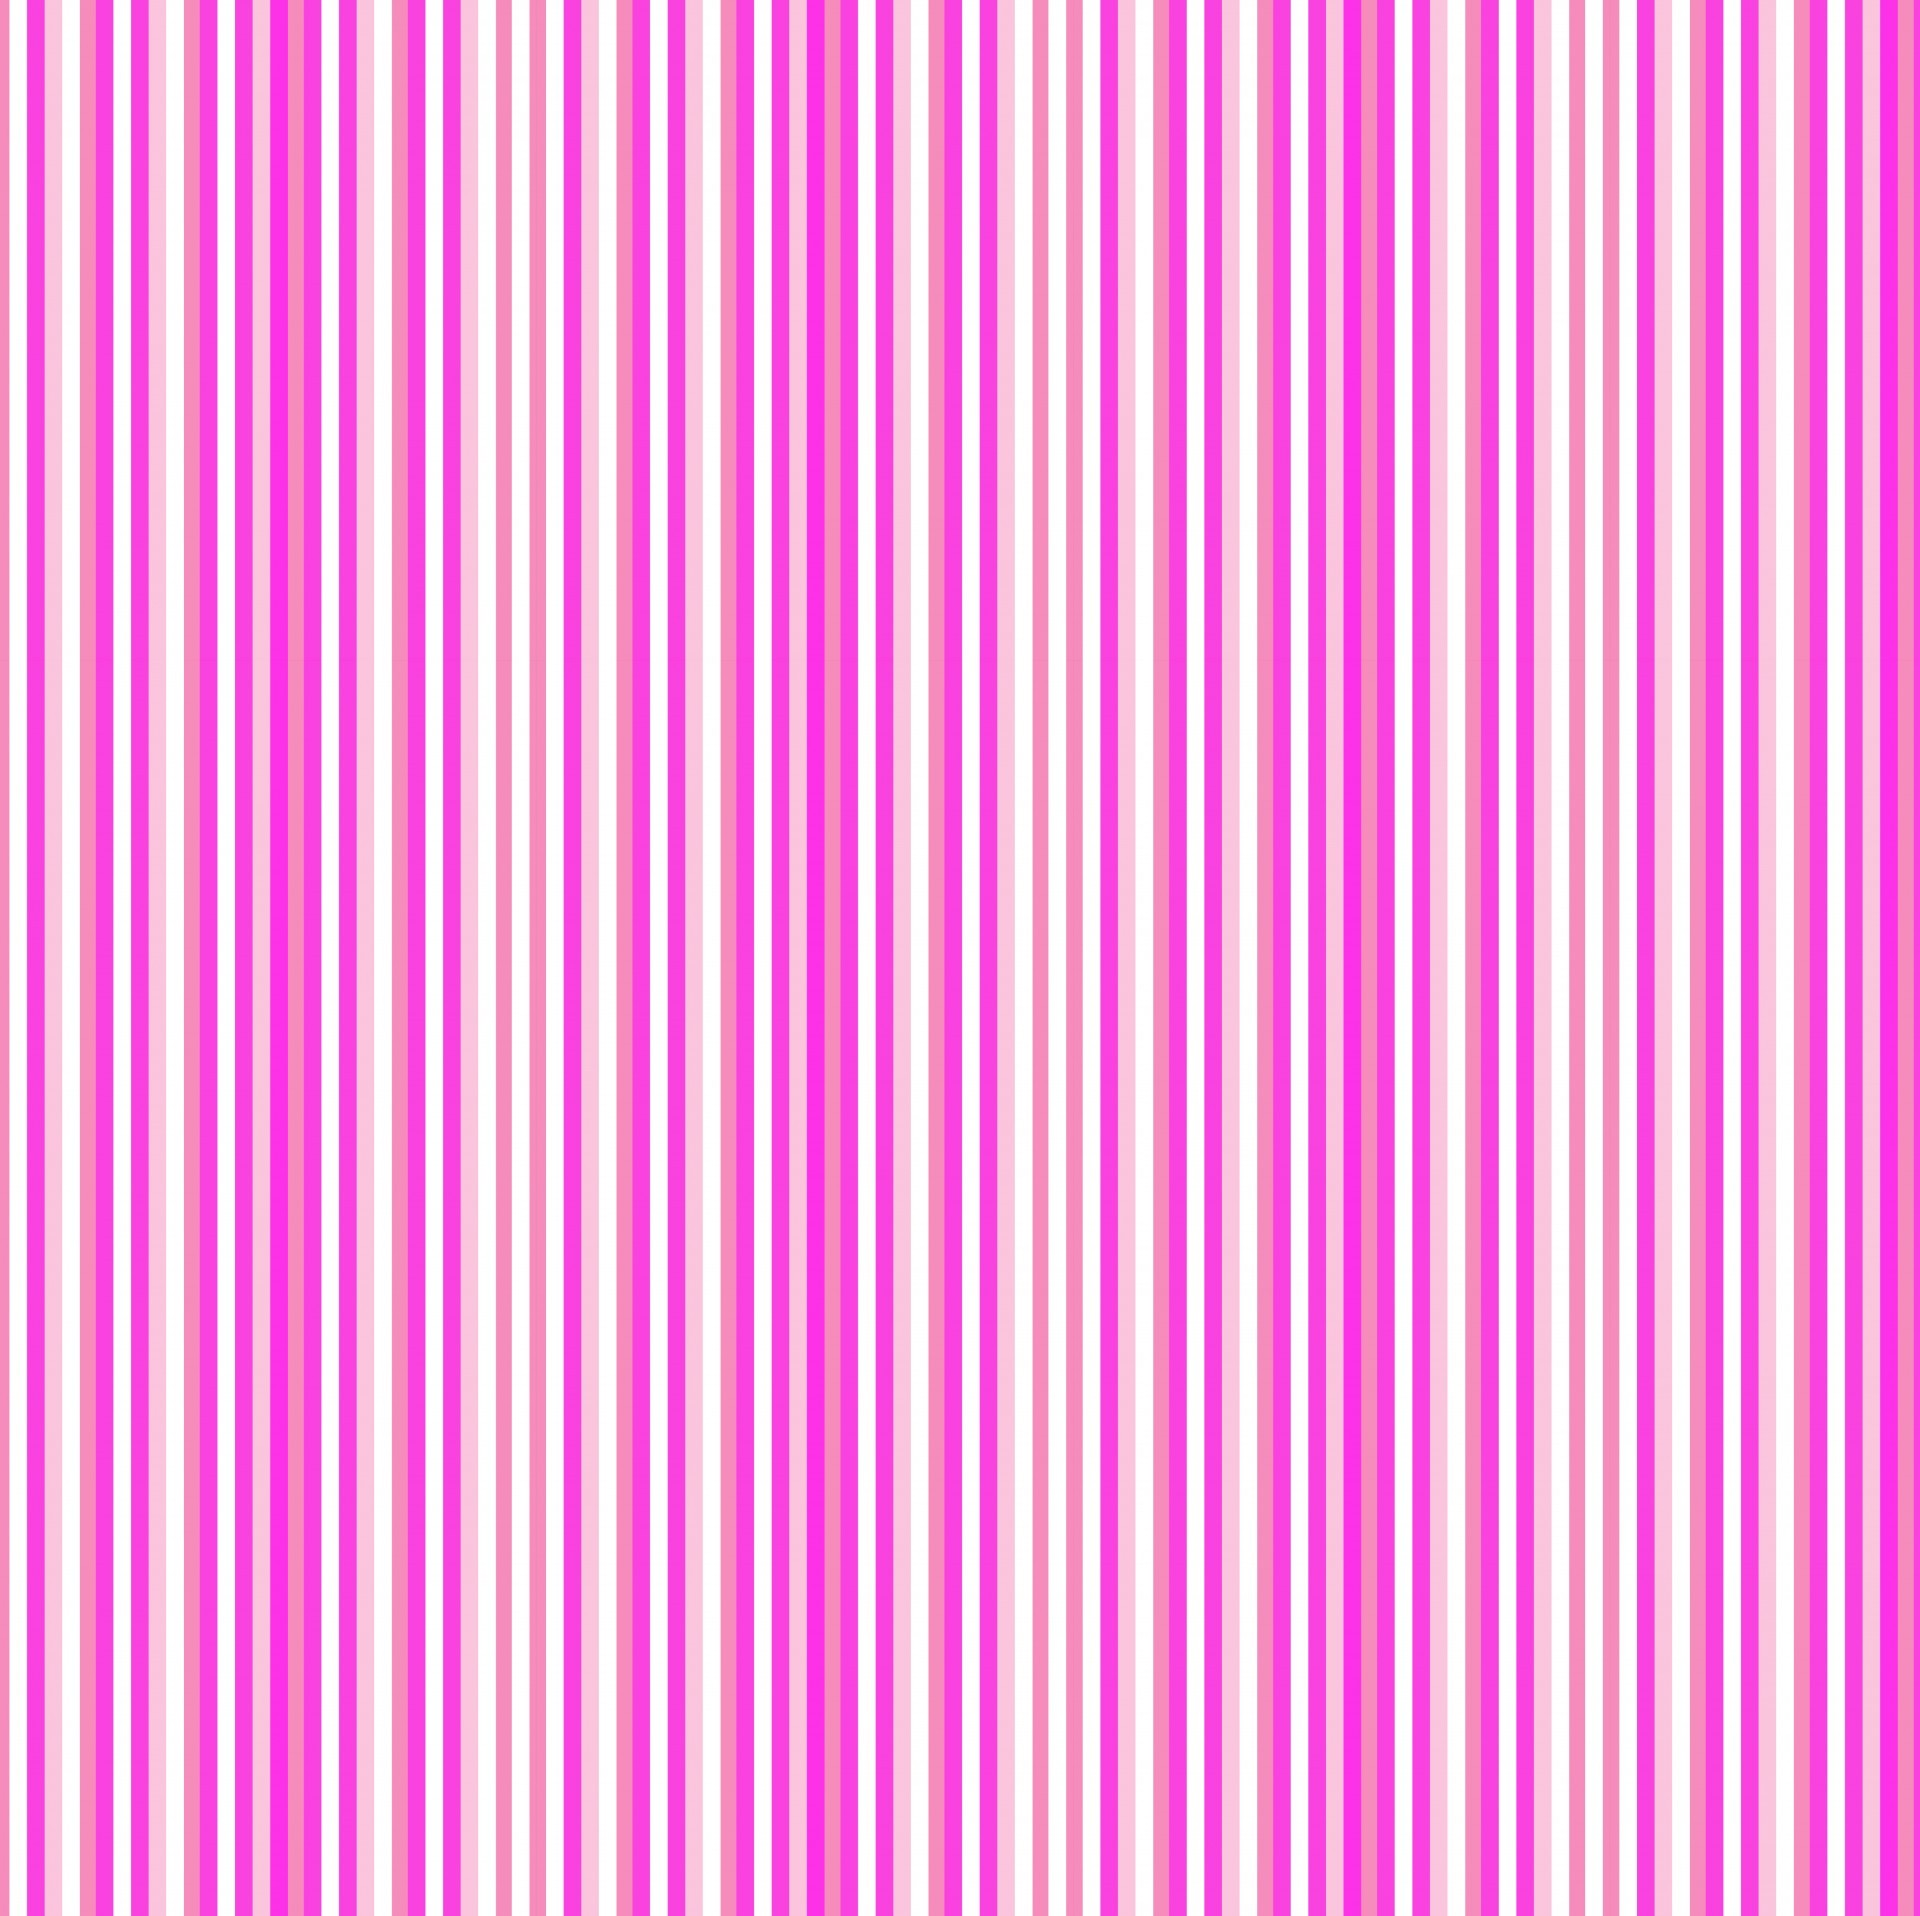 Stripes background ·① Download free cool full HD ...